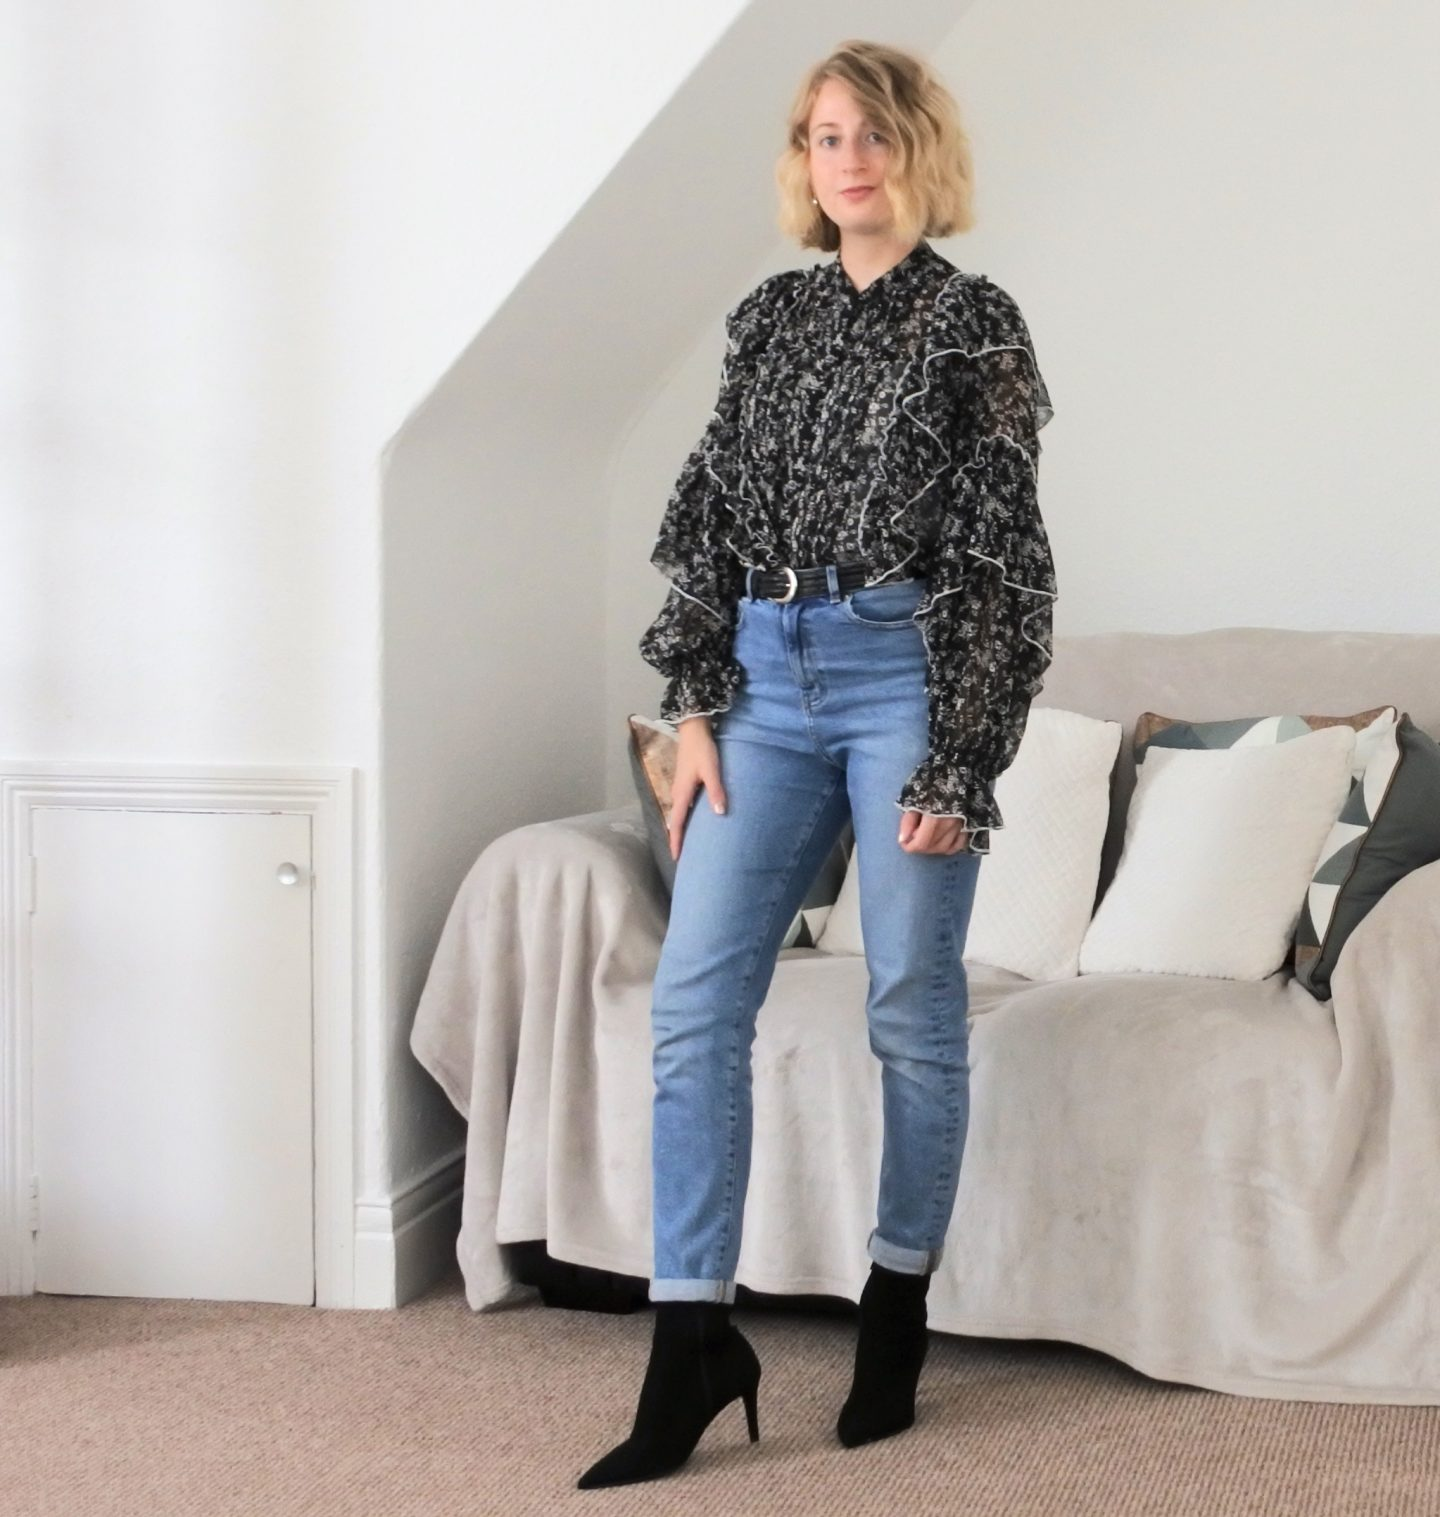 styling mom jeans look 3 blouse and boots